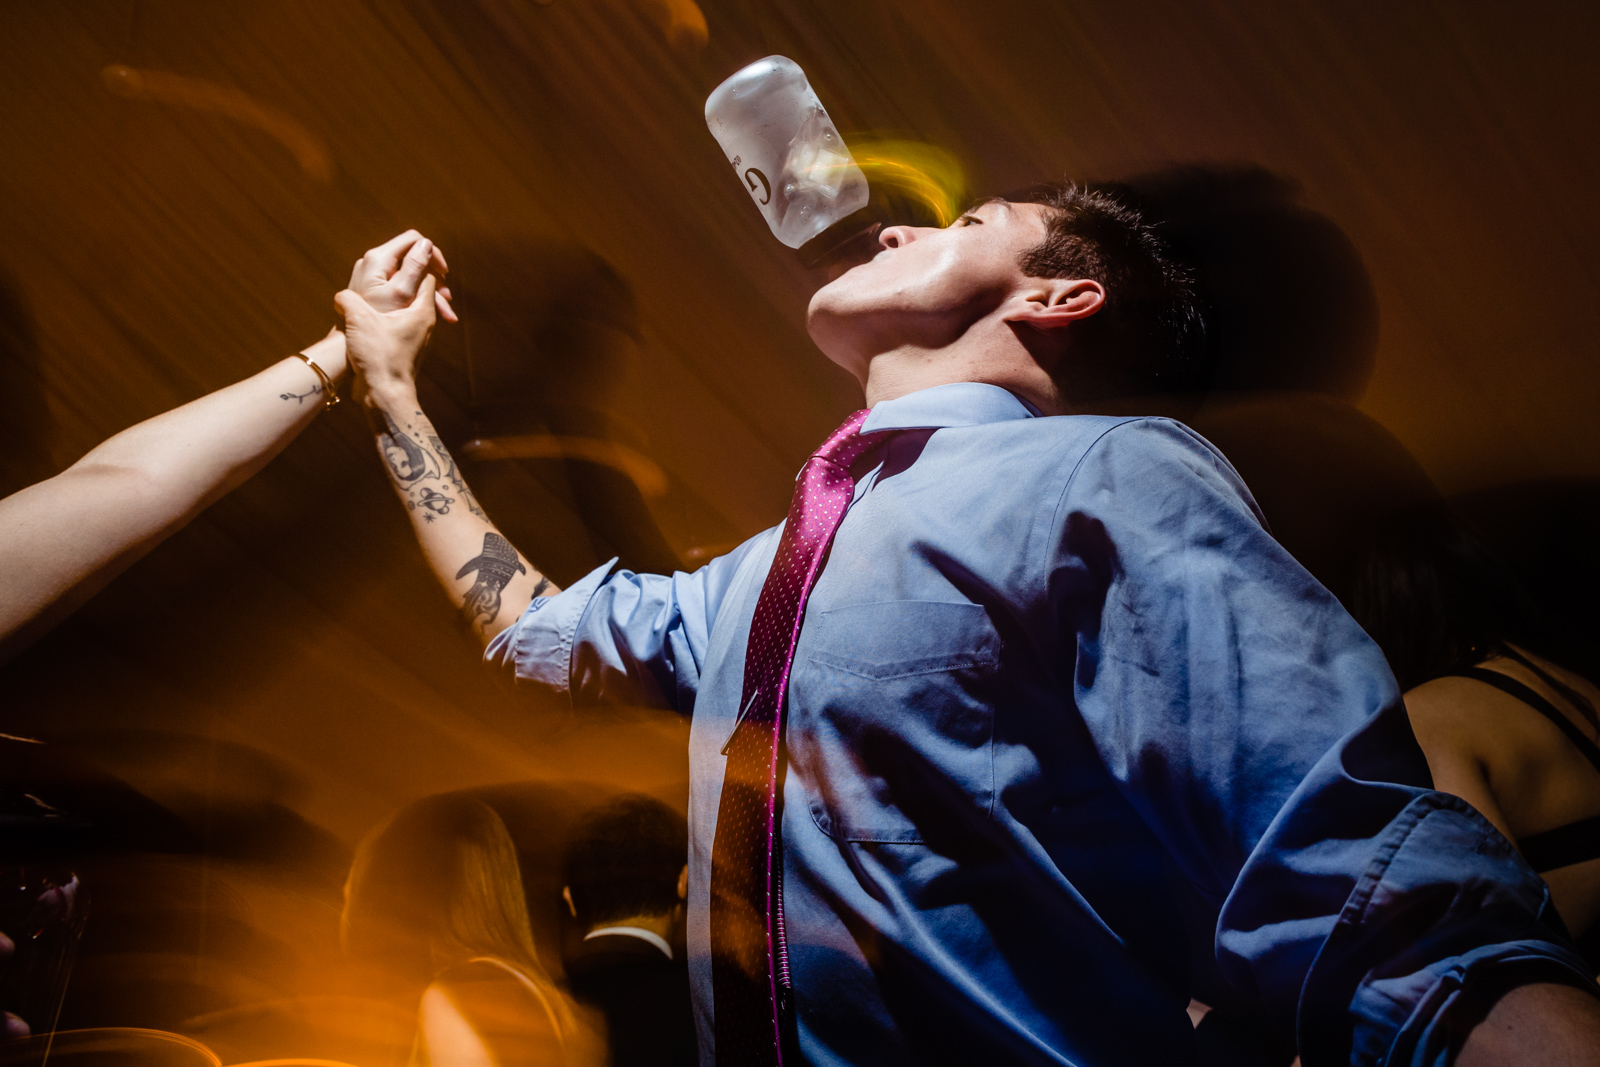 guy drink o the dance floor with drink on his mouth